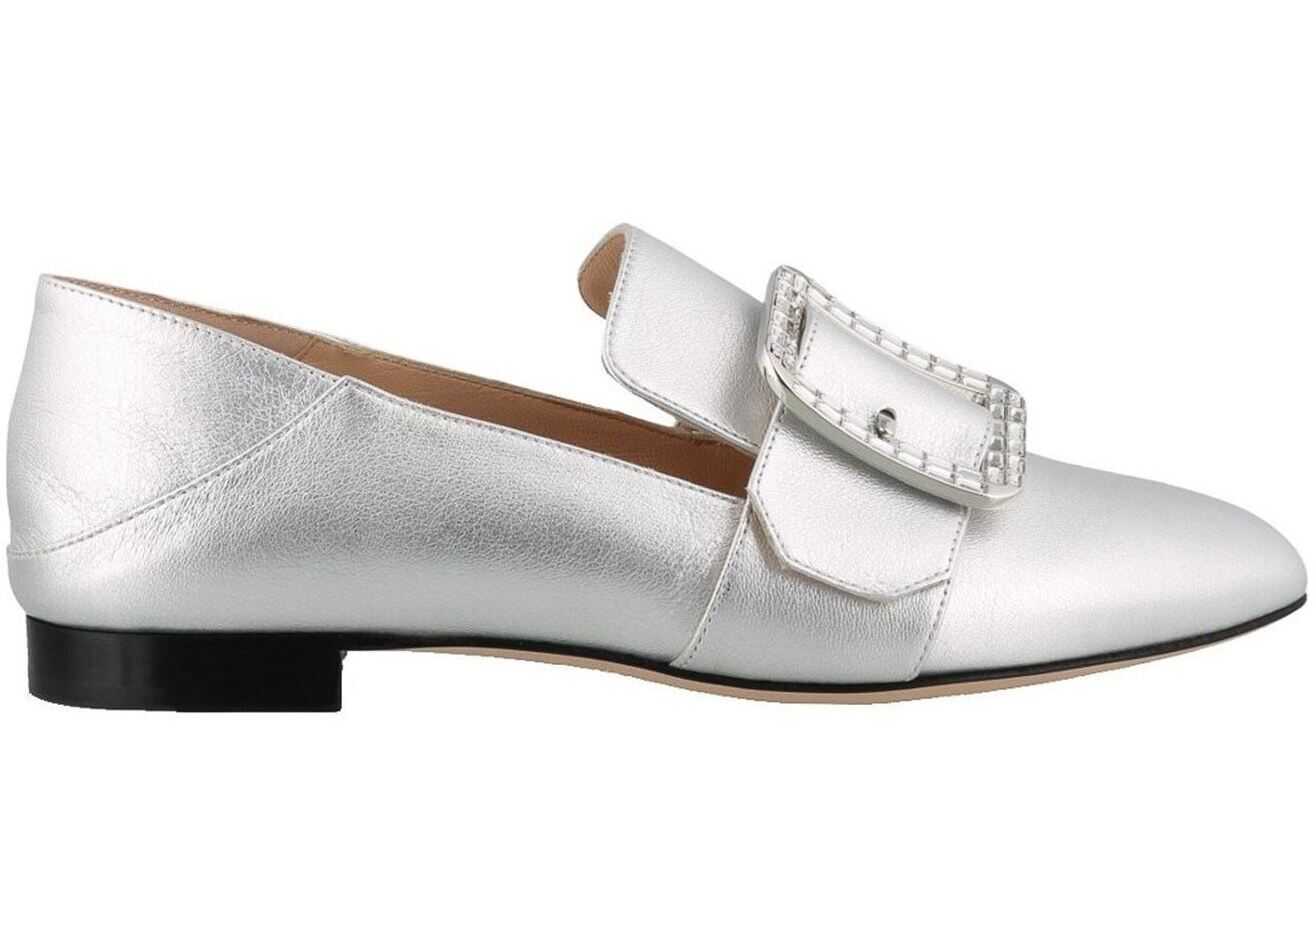 Bally Janelle Crystal Buckle Slippers Silver